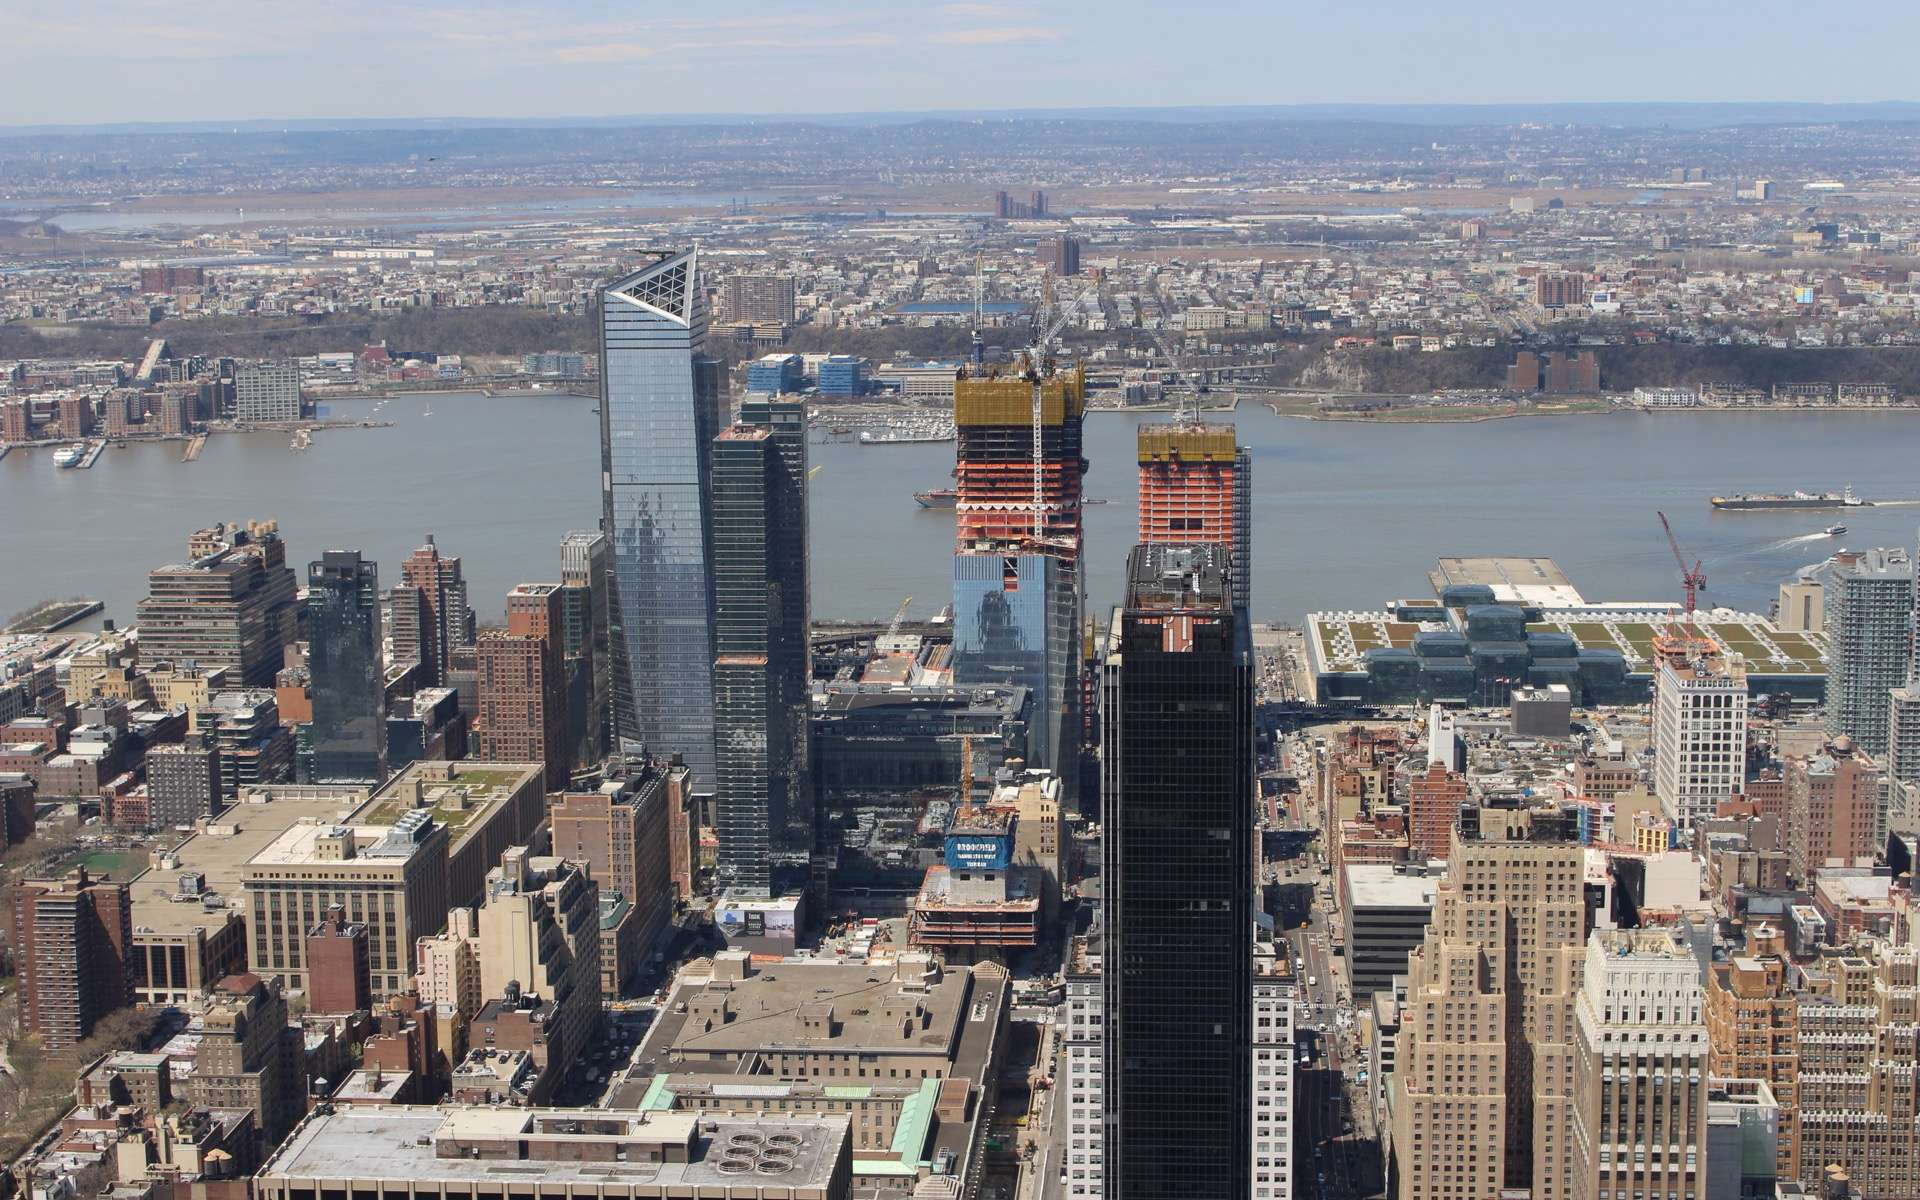 Tours, aéroport, musées... Les grands projets architecturaux de 2019. Ici, le projet Hudson Yards, à New York, vu de l'Empire State Building © Becker747400, Wikimedia Commons, CC by-sa 4.0